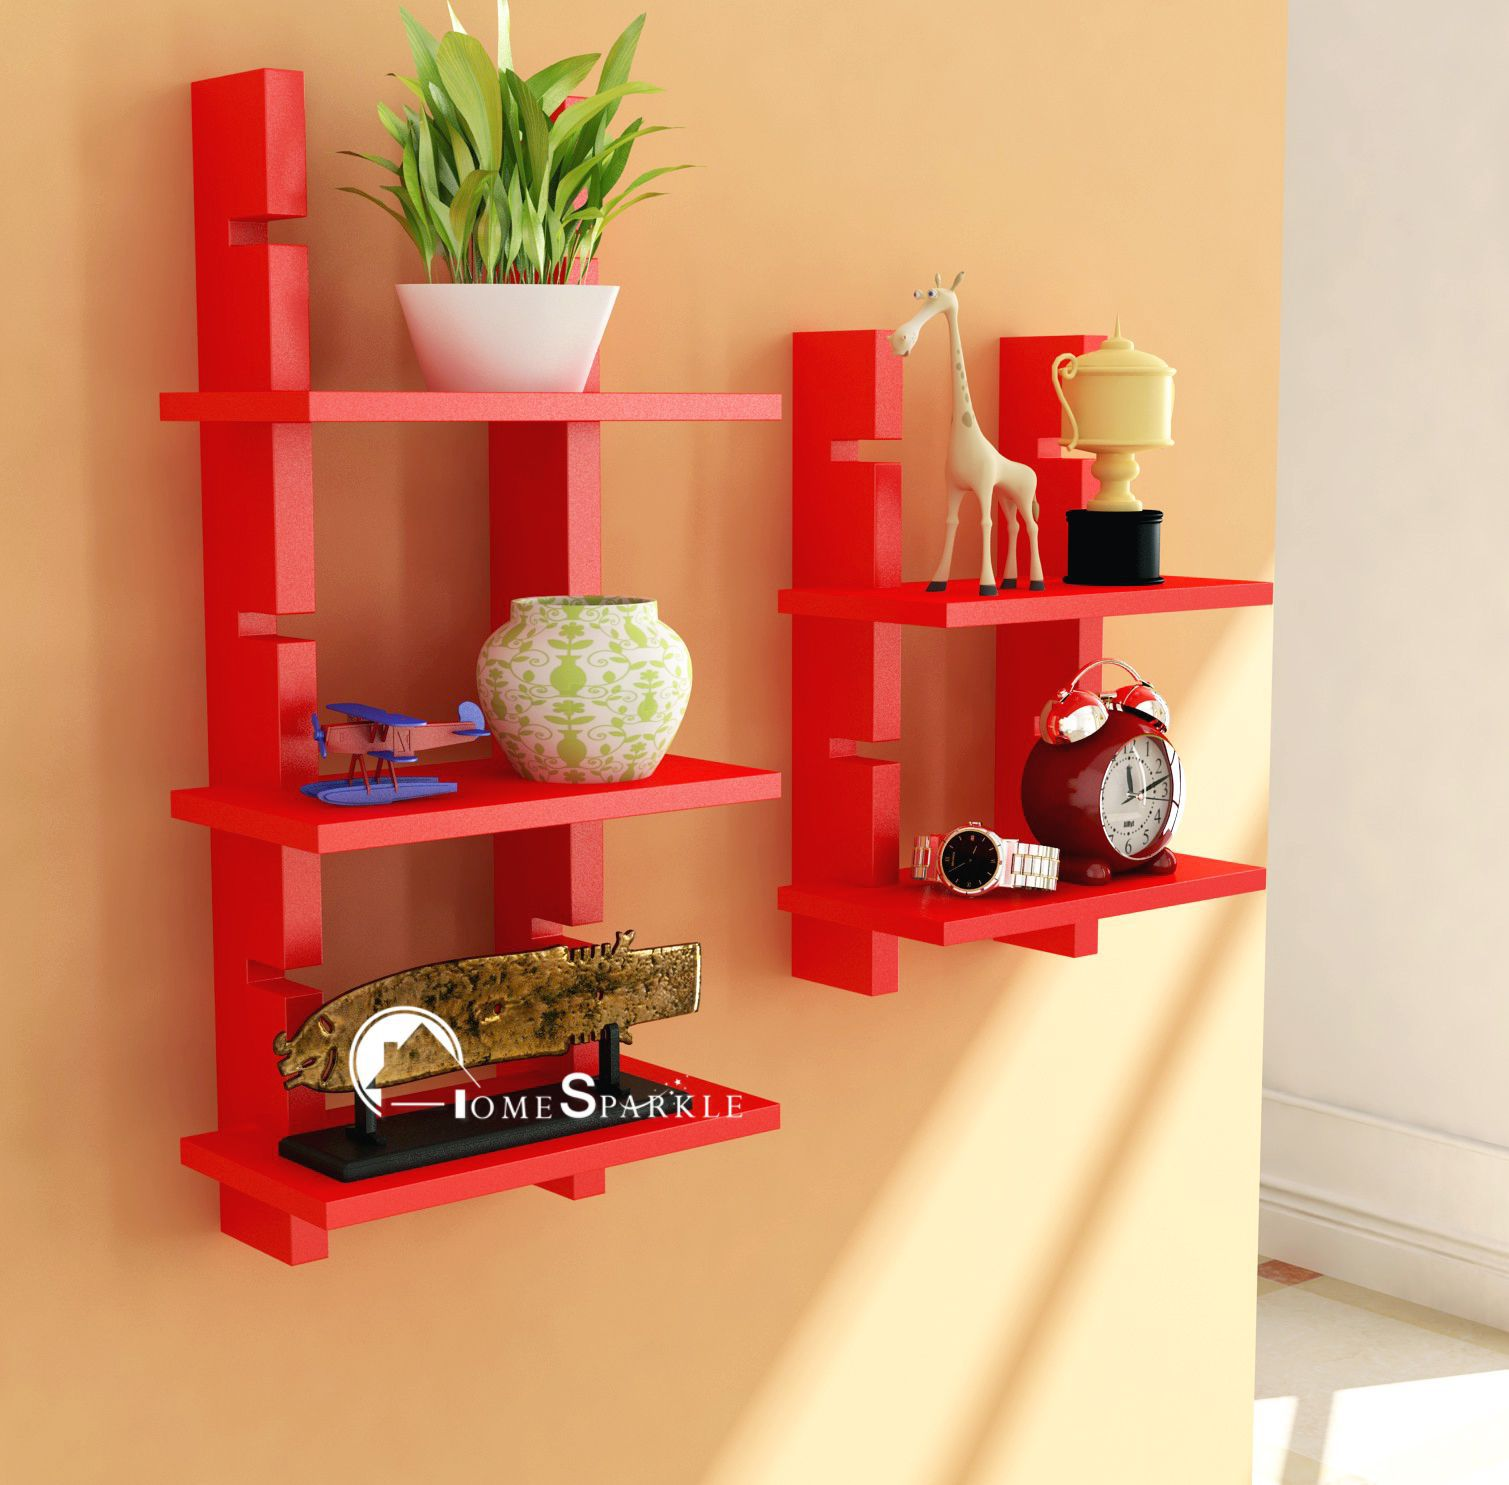 Home Sparkle MDF Ladder Shelf For Wall Décor -Suitable For Living Room/Bed Room (Designed By Craftsman)